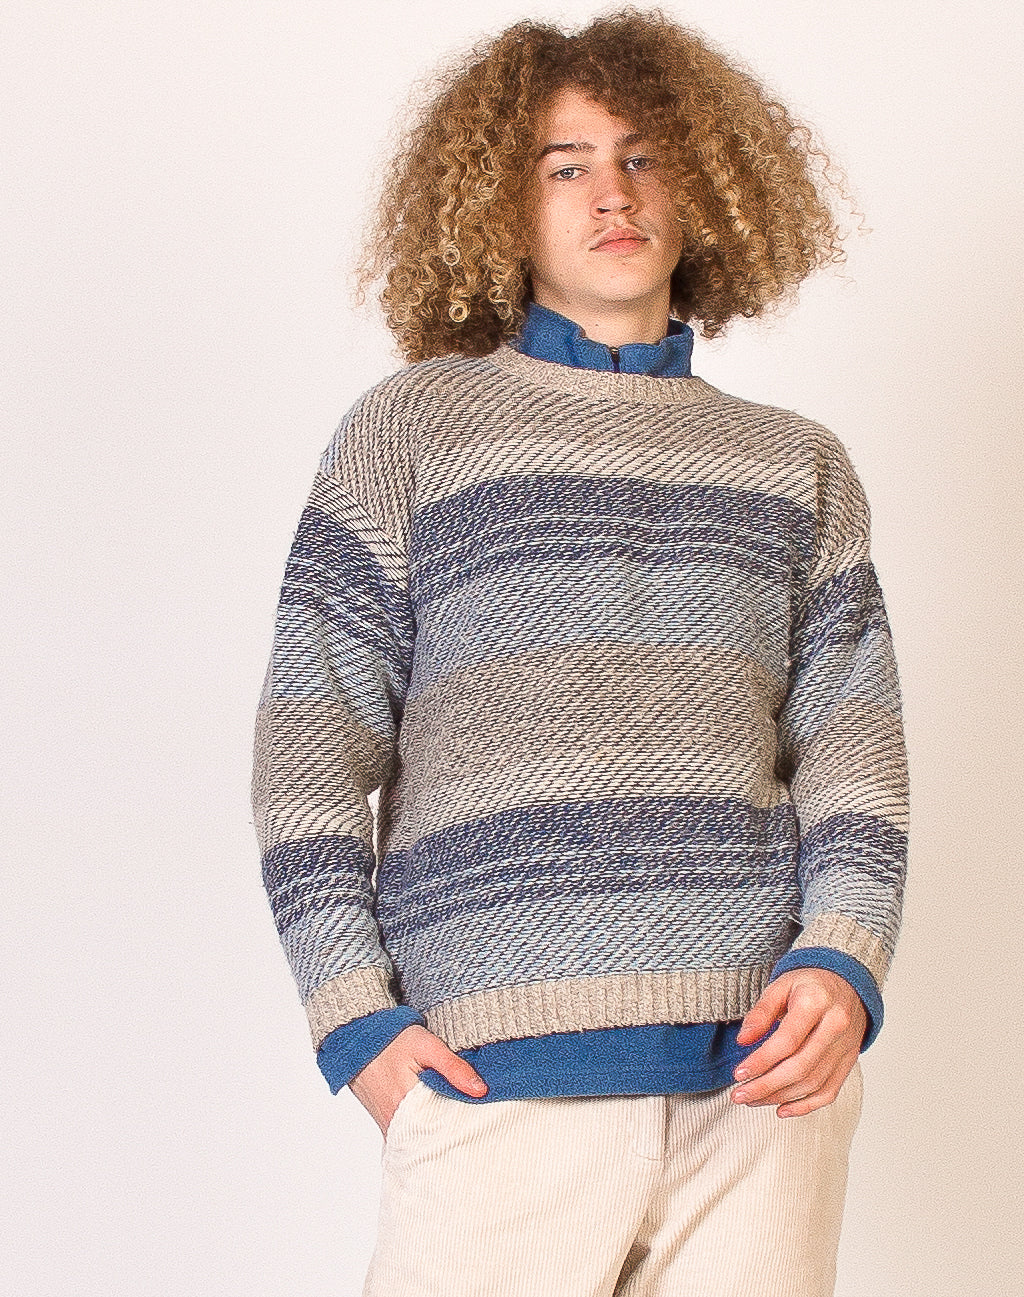 CREAM AND BLUE STRIPED KNIT